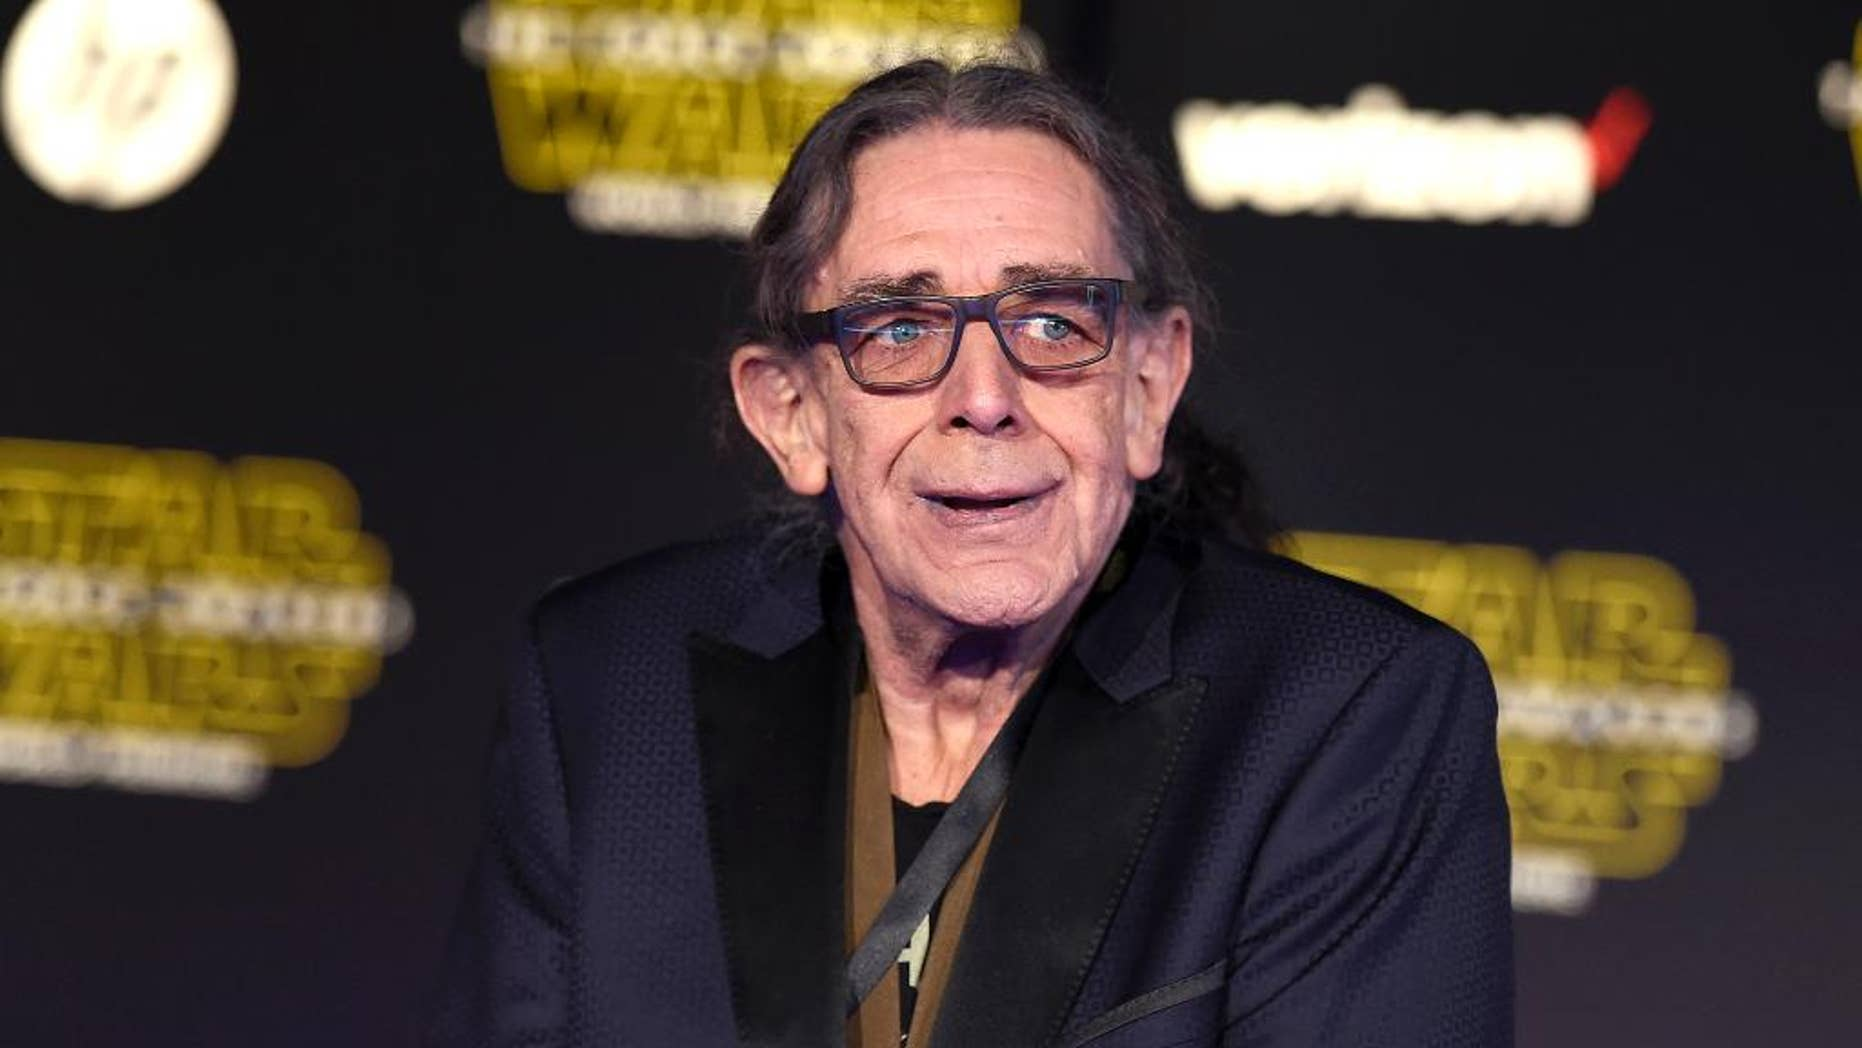 """FILE - In this Dec. 14, 2015, file photo, Peter Mayhew arrives at the world premiere of """"Star Wars: The Force Awakens"""" at the TCL Chinese Theatre in Los Angeles. The actor, who plays Chewbacca in the Star Wars films, agreed to meet """"Chewbacca mom"""" Candace Parker in a letter read by James Corden's on Monday's """"Late Late Show."""" (Photo by Jordan Strauss/Invision/AP, File)"""